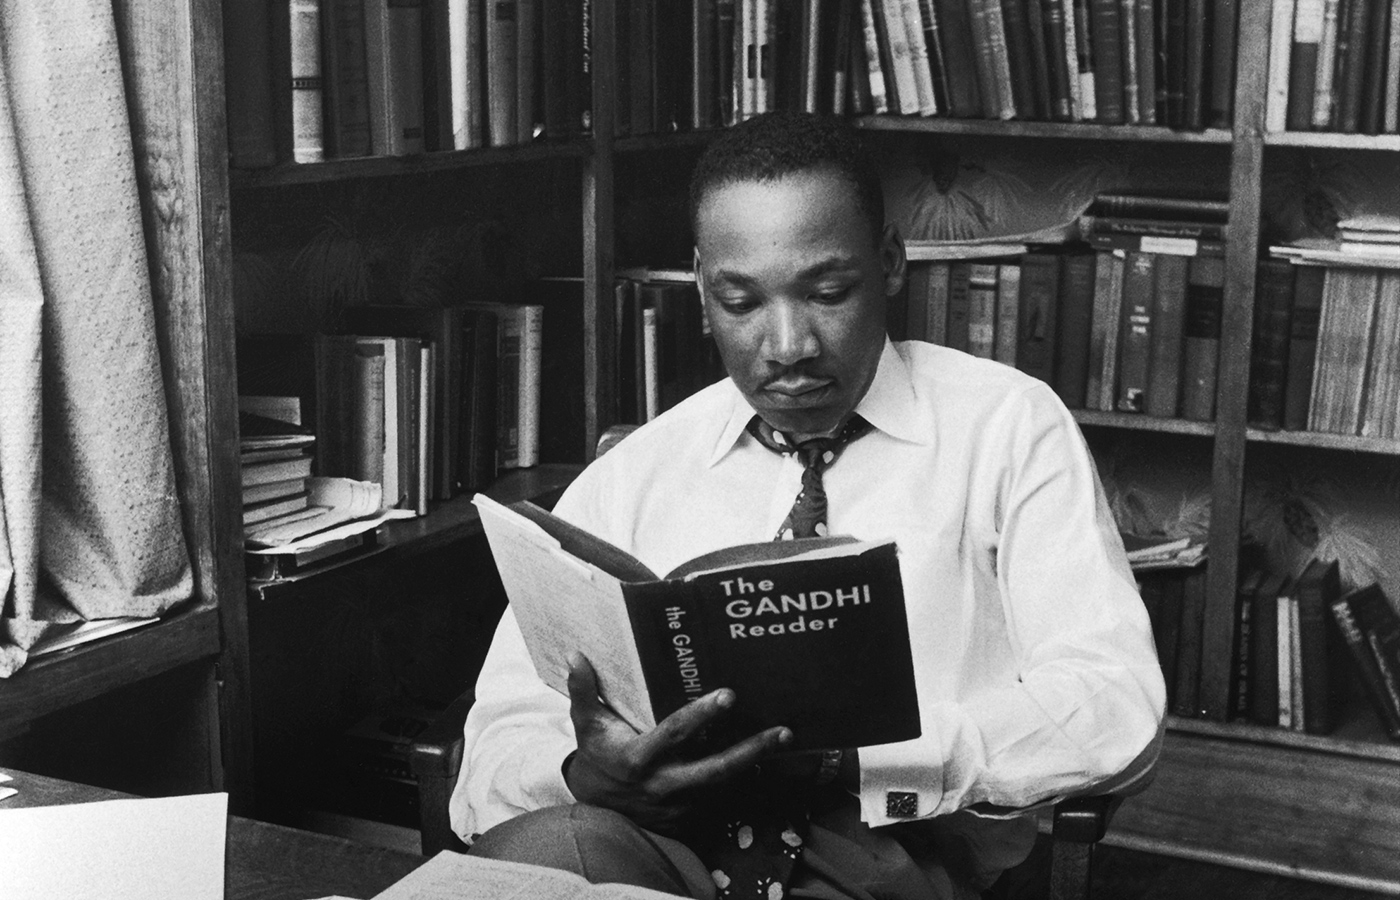 martin luther king human rights quotes